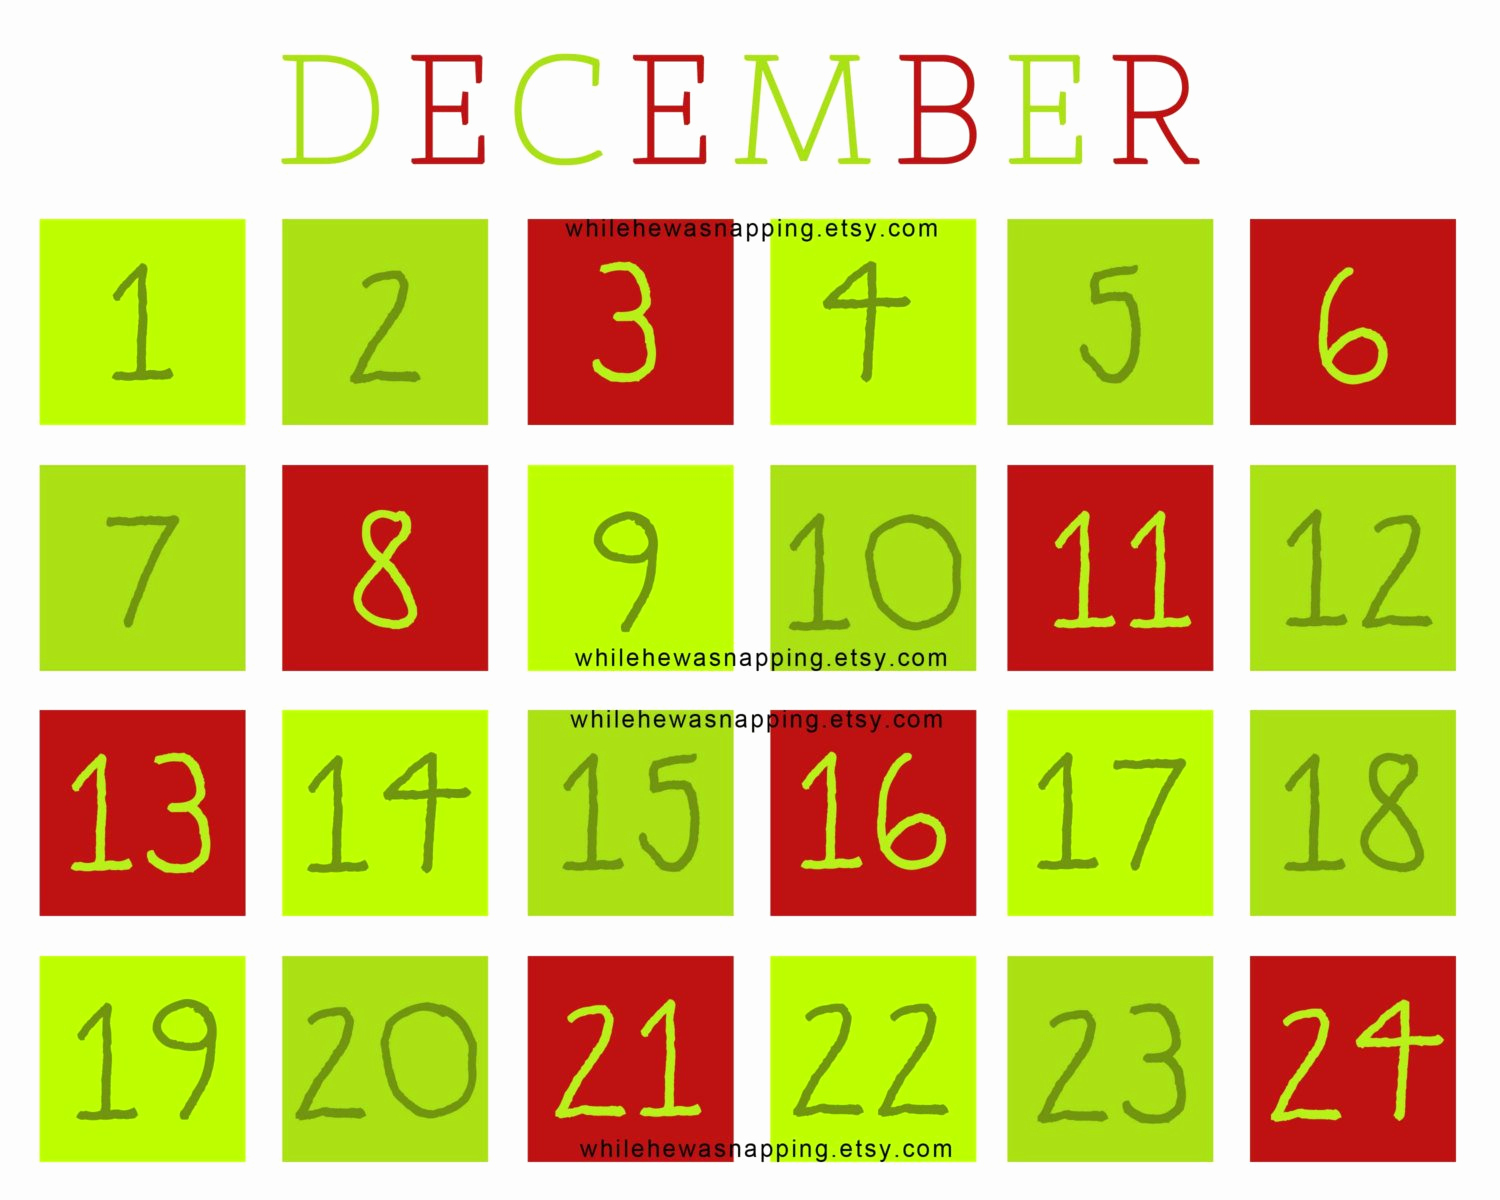 22 Awesome Christmas Countdown Calendars   KittyBabyLove.com